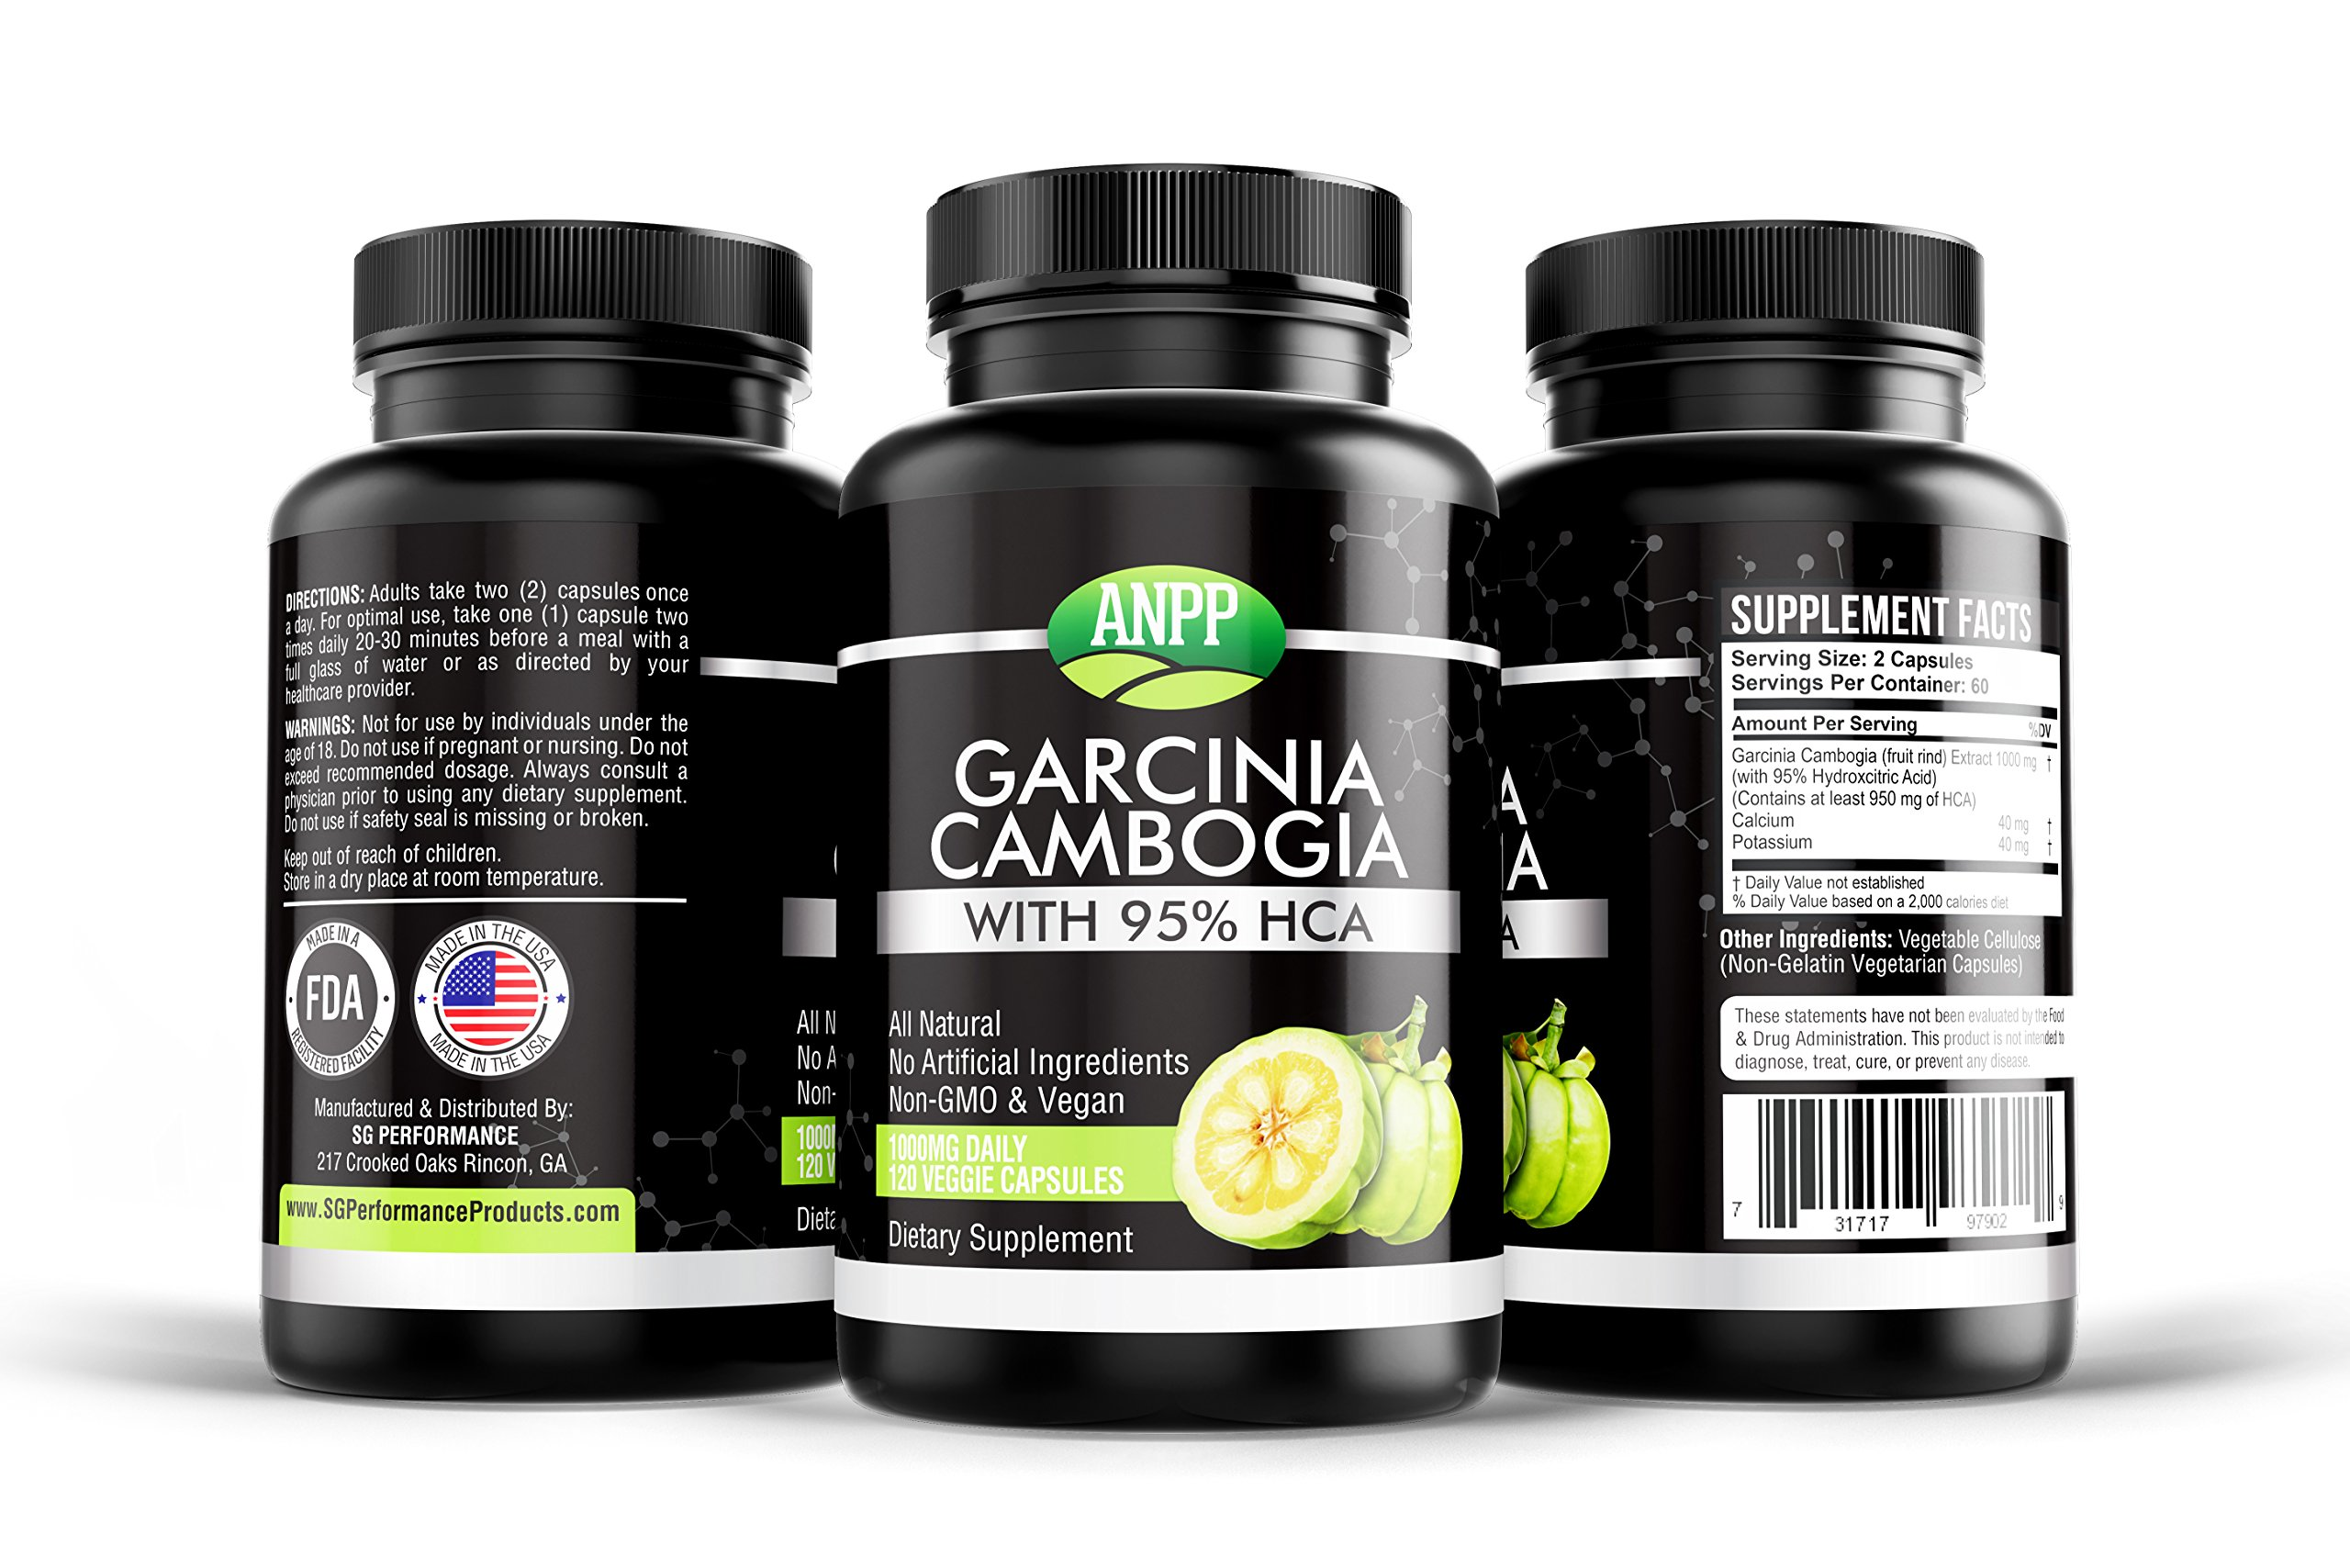 100% Pure Garcinia Cambrogia 95% HCA, 120 Caps, 2 Month Supply, Appetite Suppressant, for Men/Women, Easily Lose Weight, Keto Friendly, Organic, All Natural Weight Loss Pills